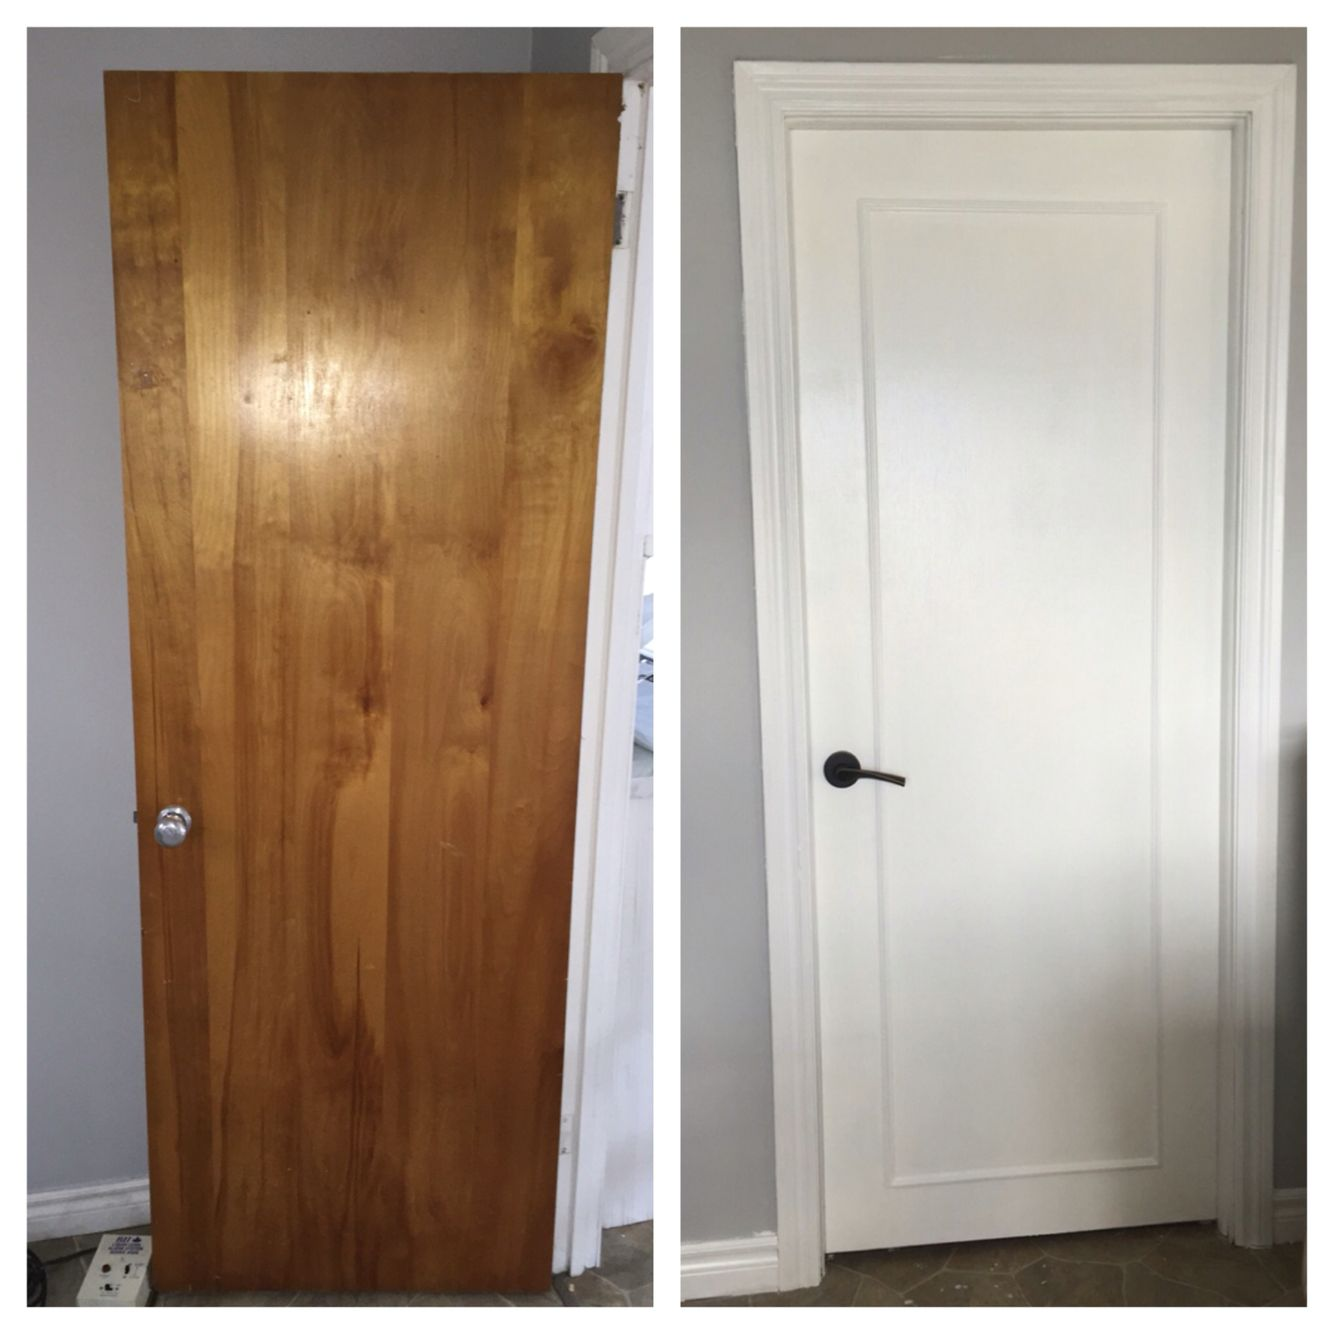 Updated Old Wood Doors To A Modern Look With Wood Trim, Primer, White Pearl